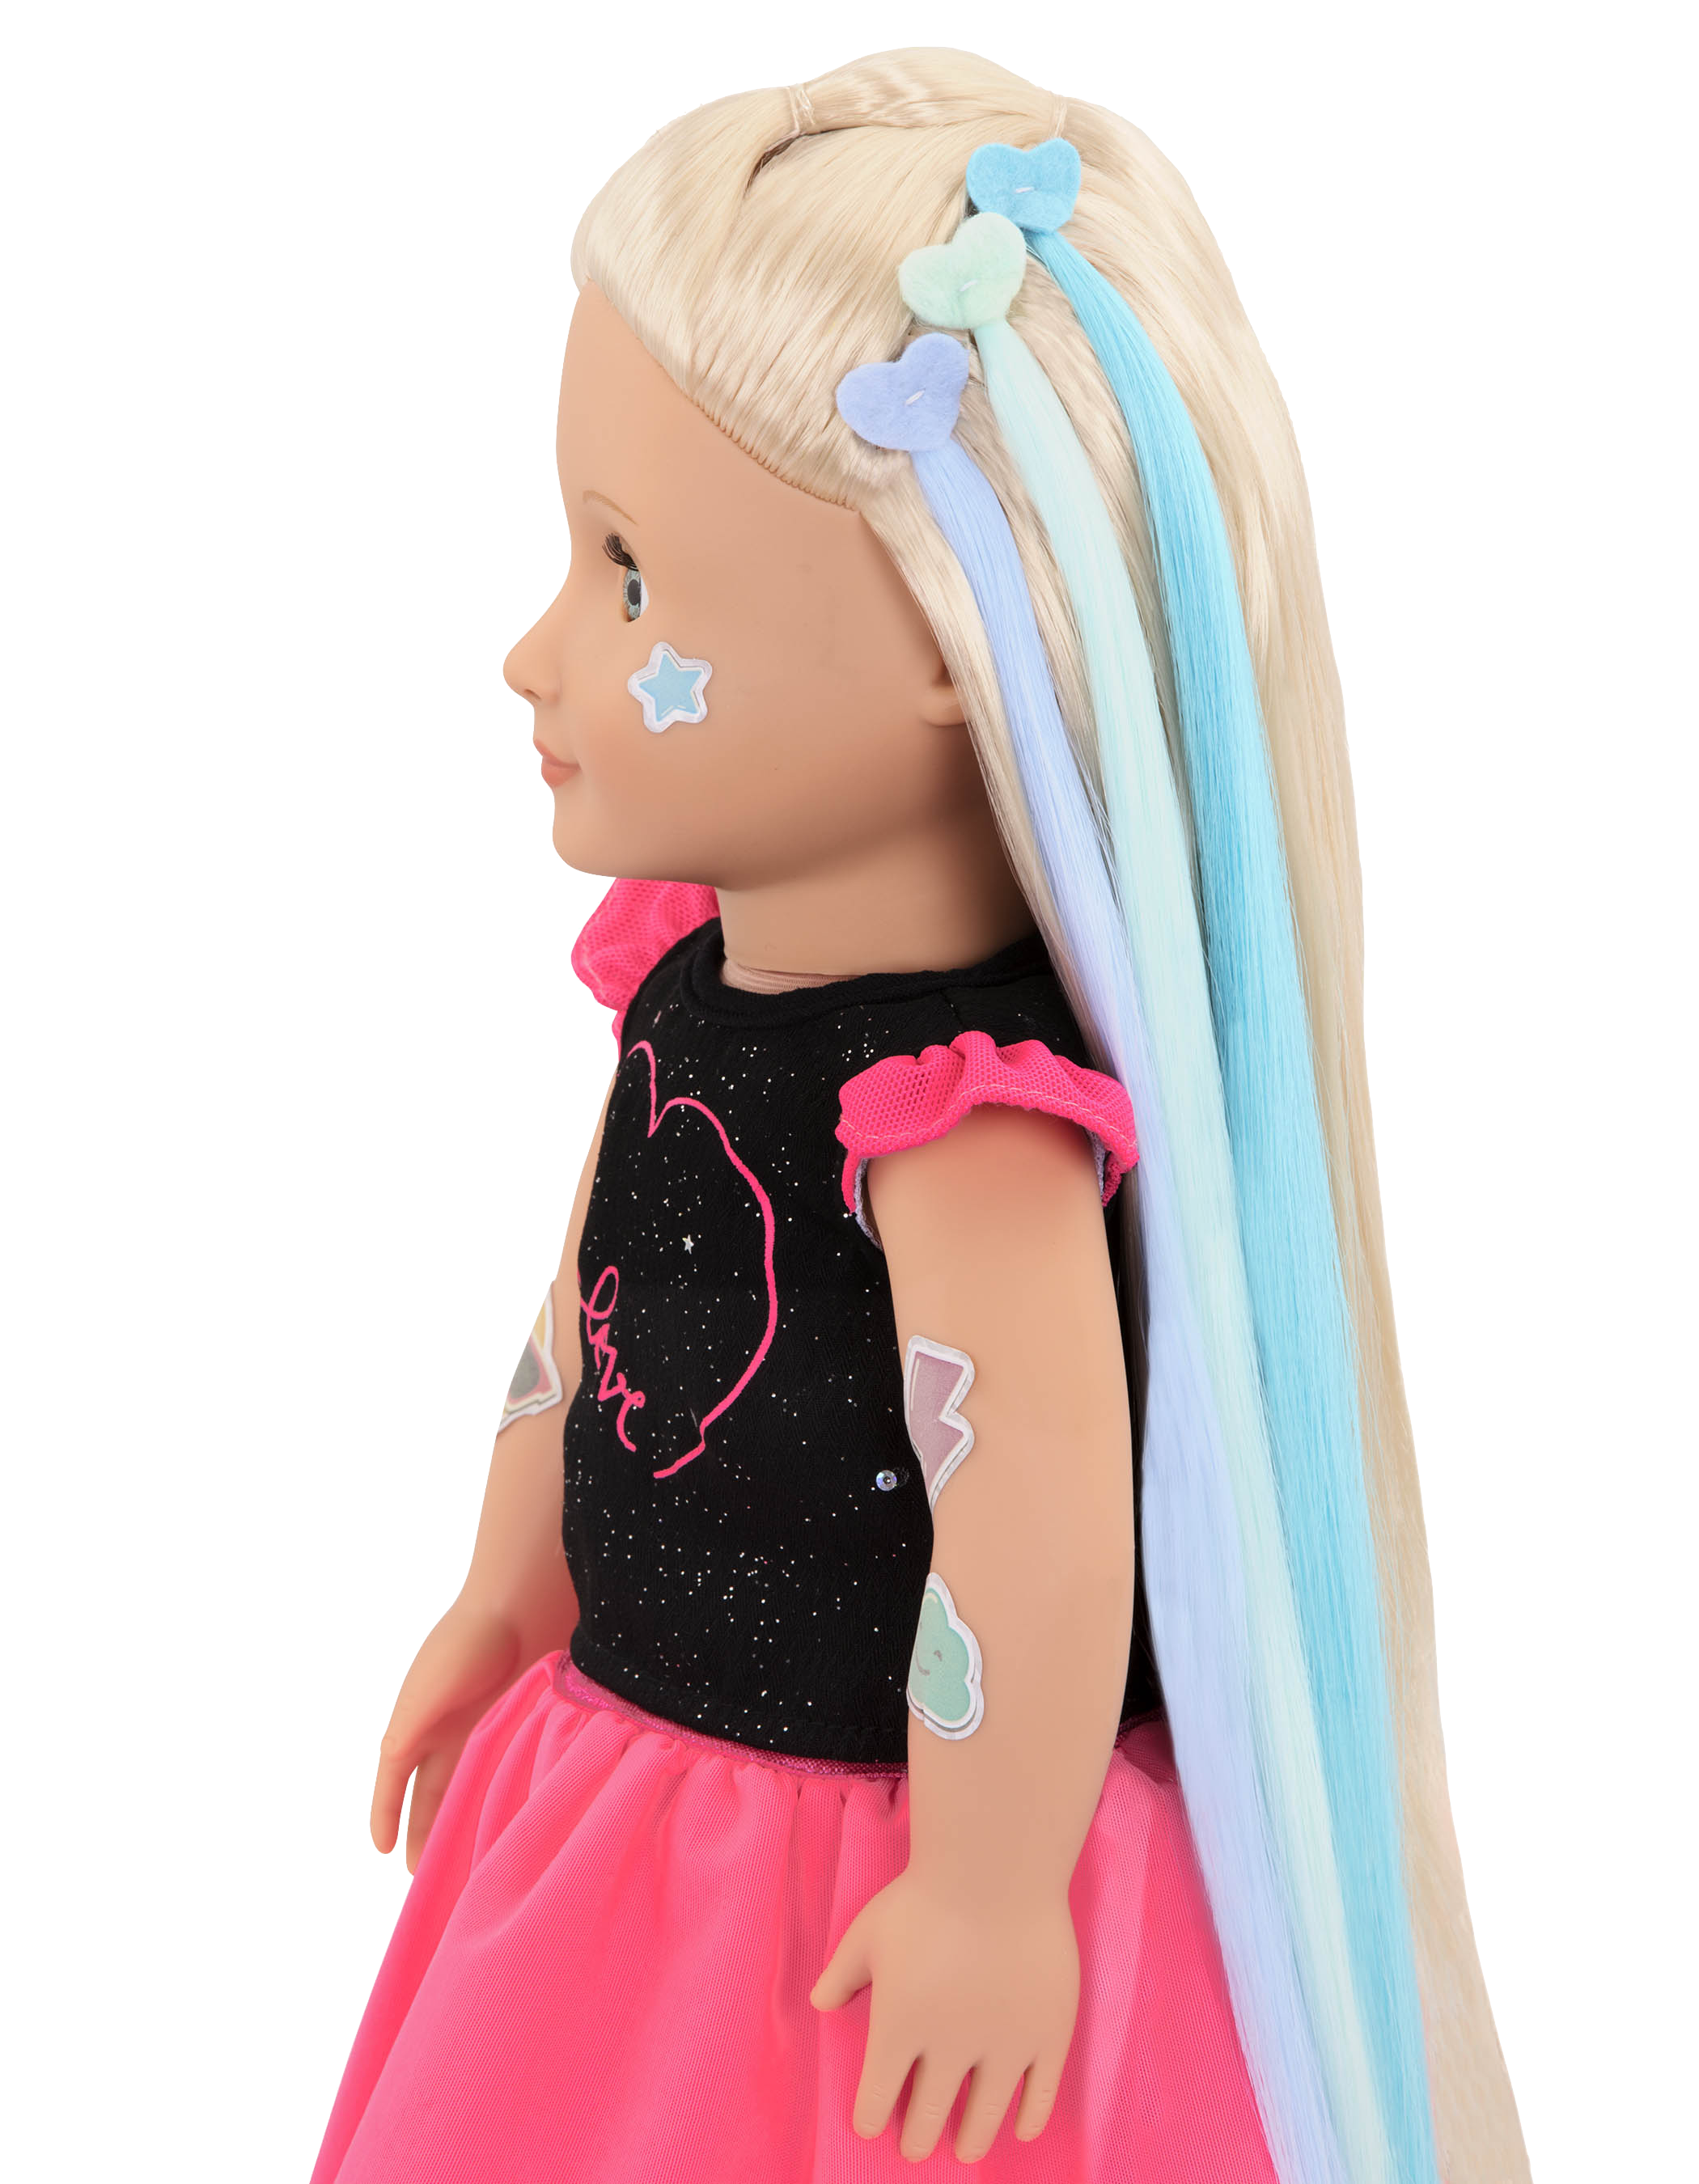 Side profile of Luana with hair extensions